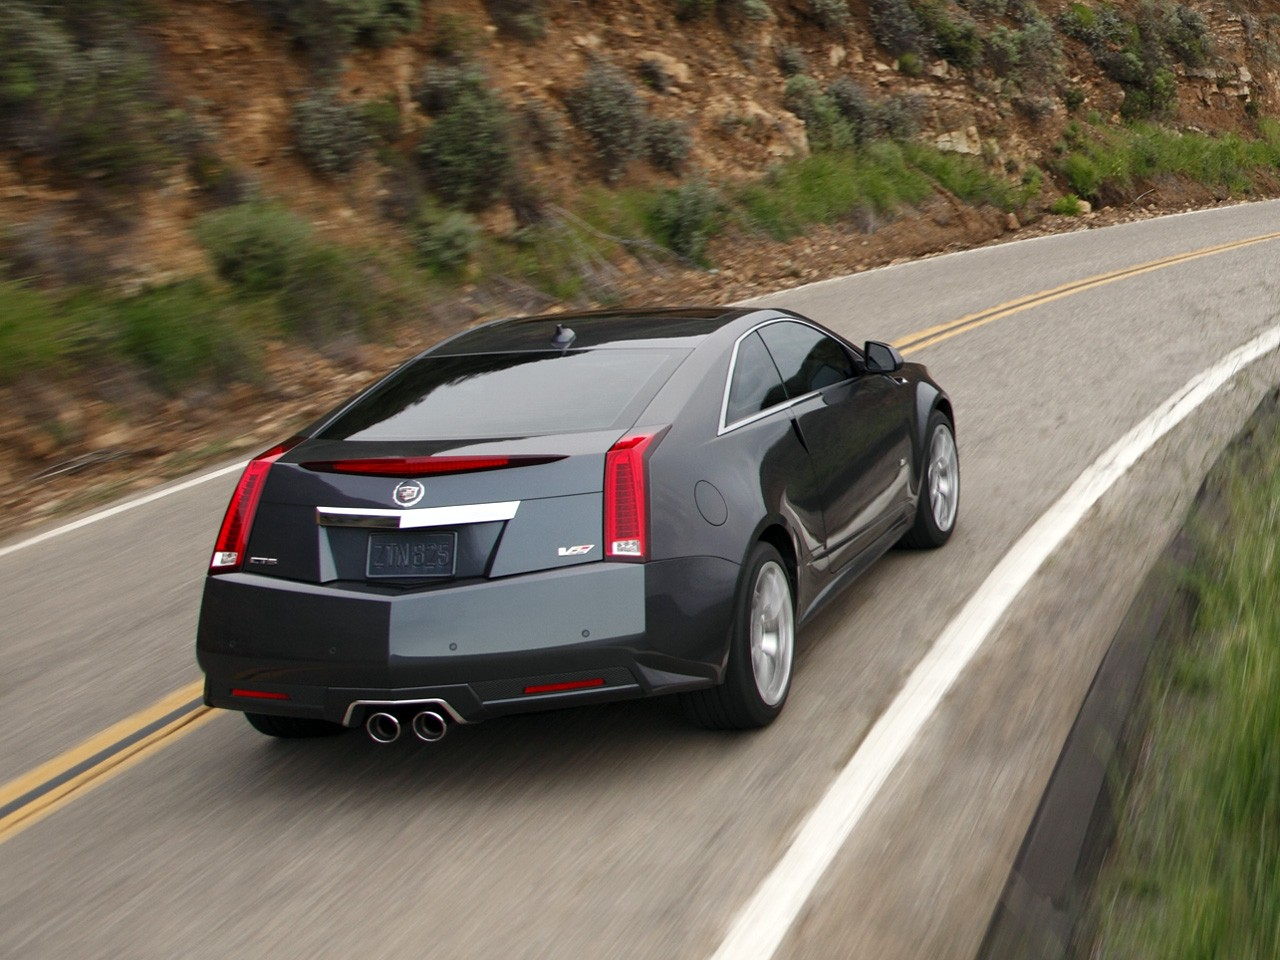 Michelin Pilot Sport >> CADILLAC CTS-V Coupe specs & photos - 2012, 2013, 2014, 2015, 2016, 2017, 2018, 2019 - autoevolution